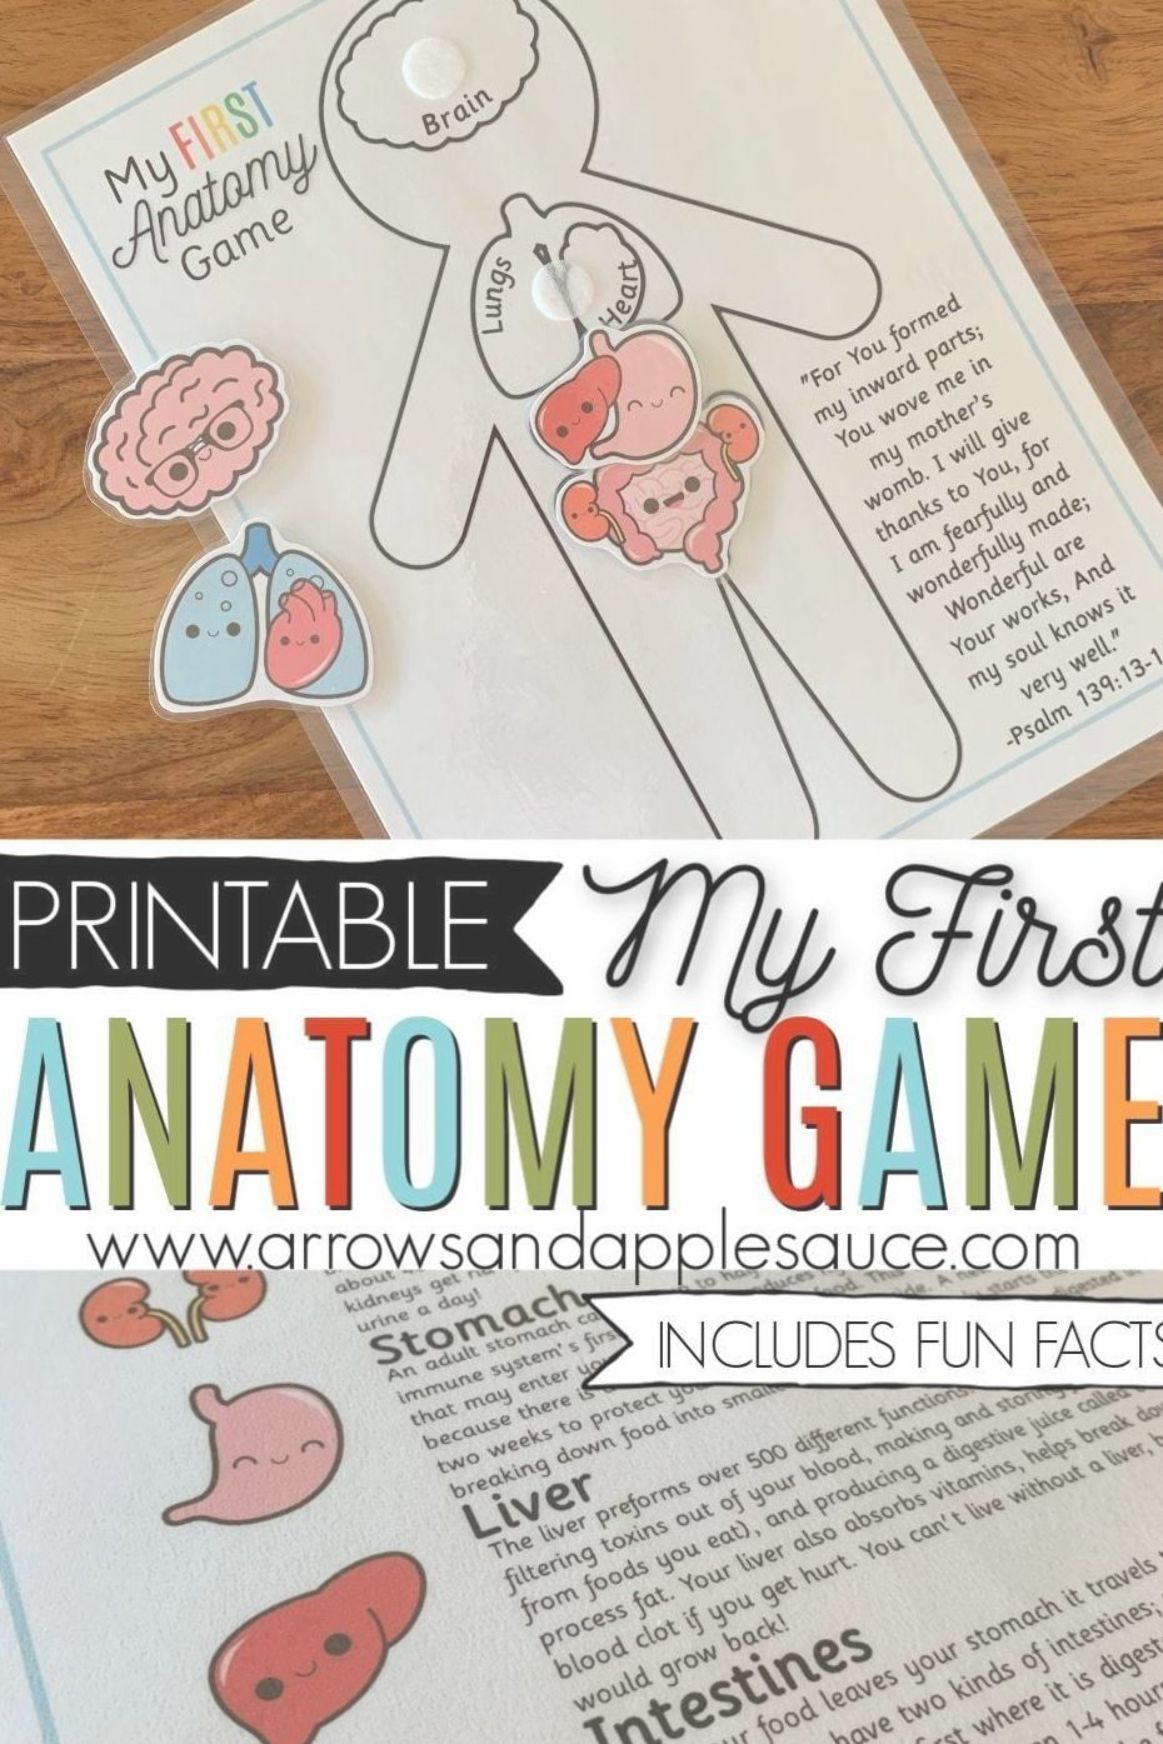 Learning About The Human Anotomy Is Fun And Easy For Kids With My First Anatomy Game Identify Ma Preschool Science Human Body Activities Preschool Activities [ 1744 x 1163 Pixel ]